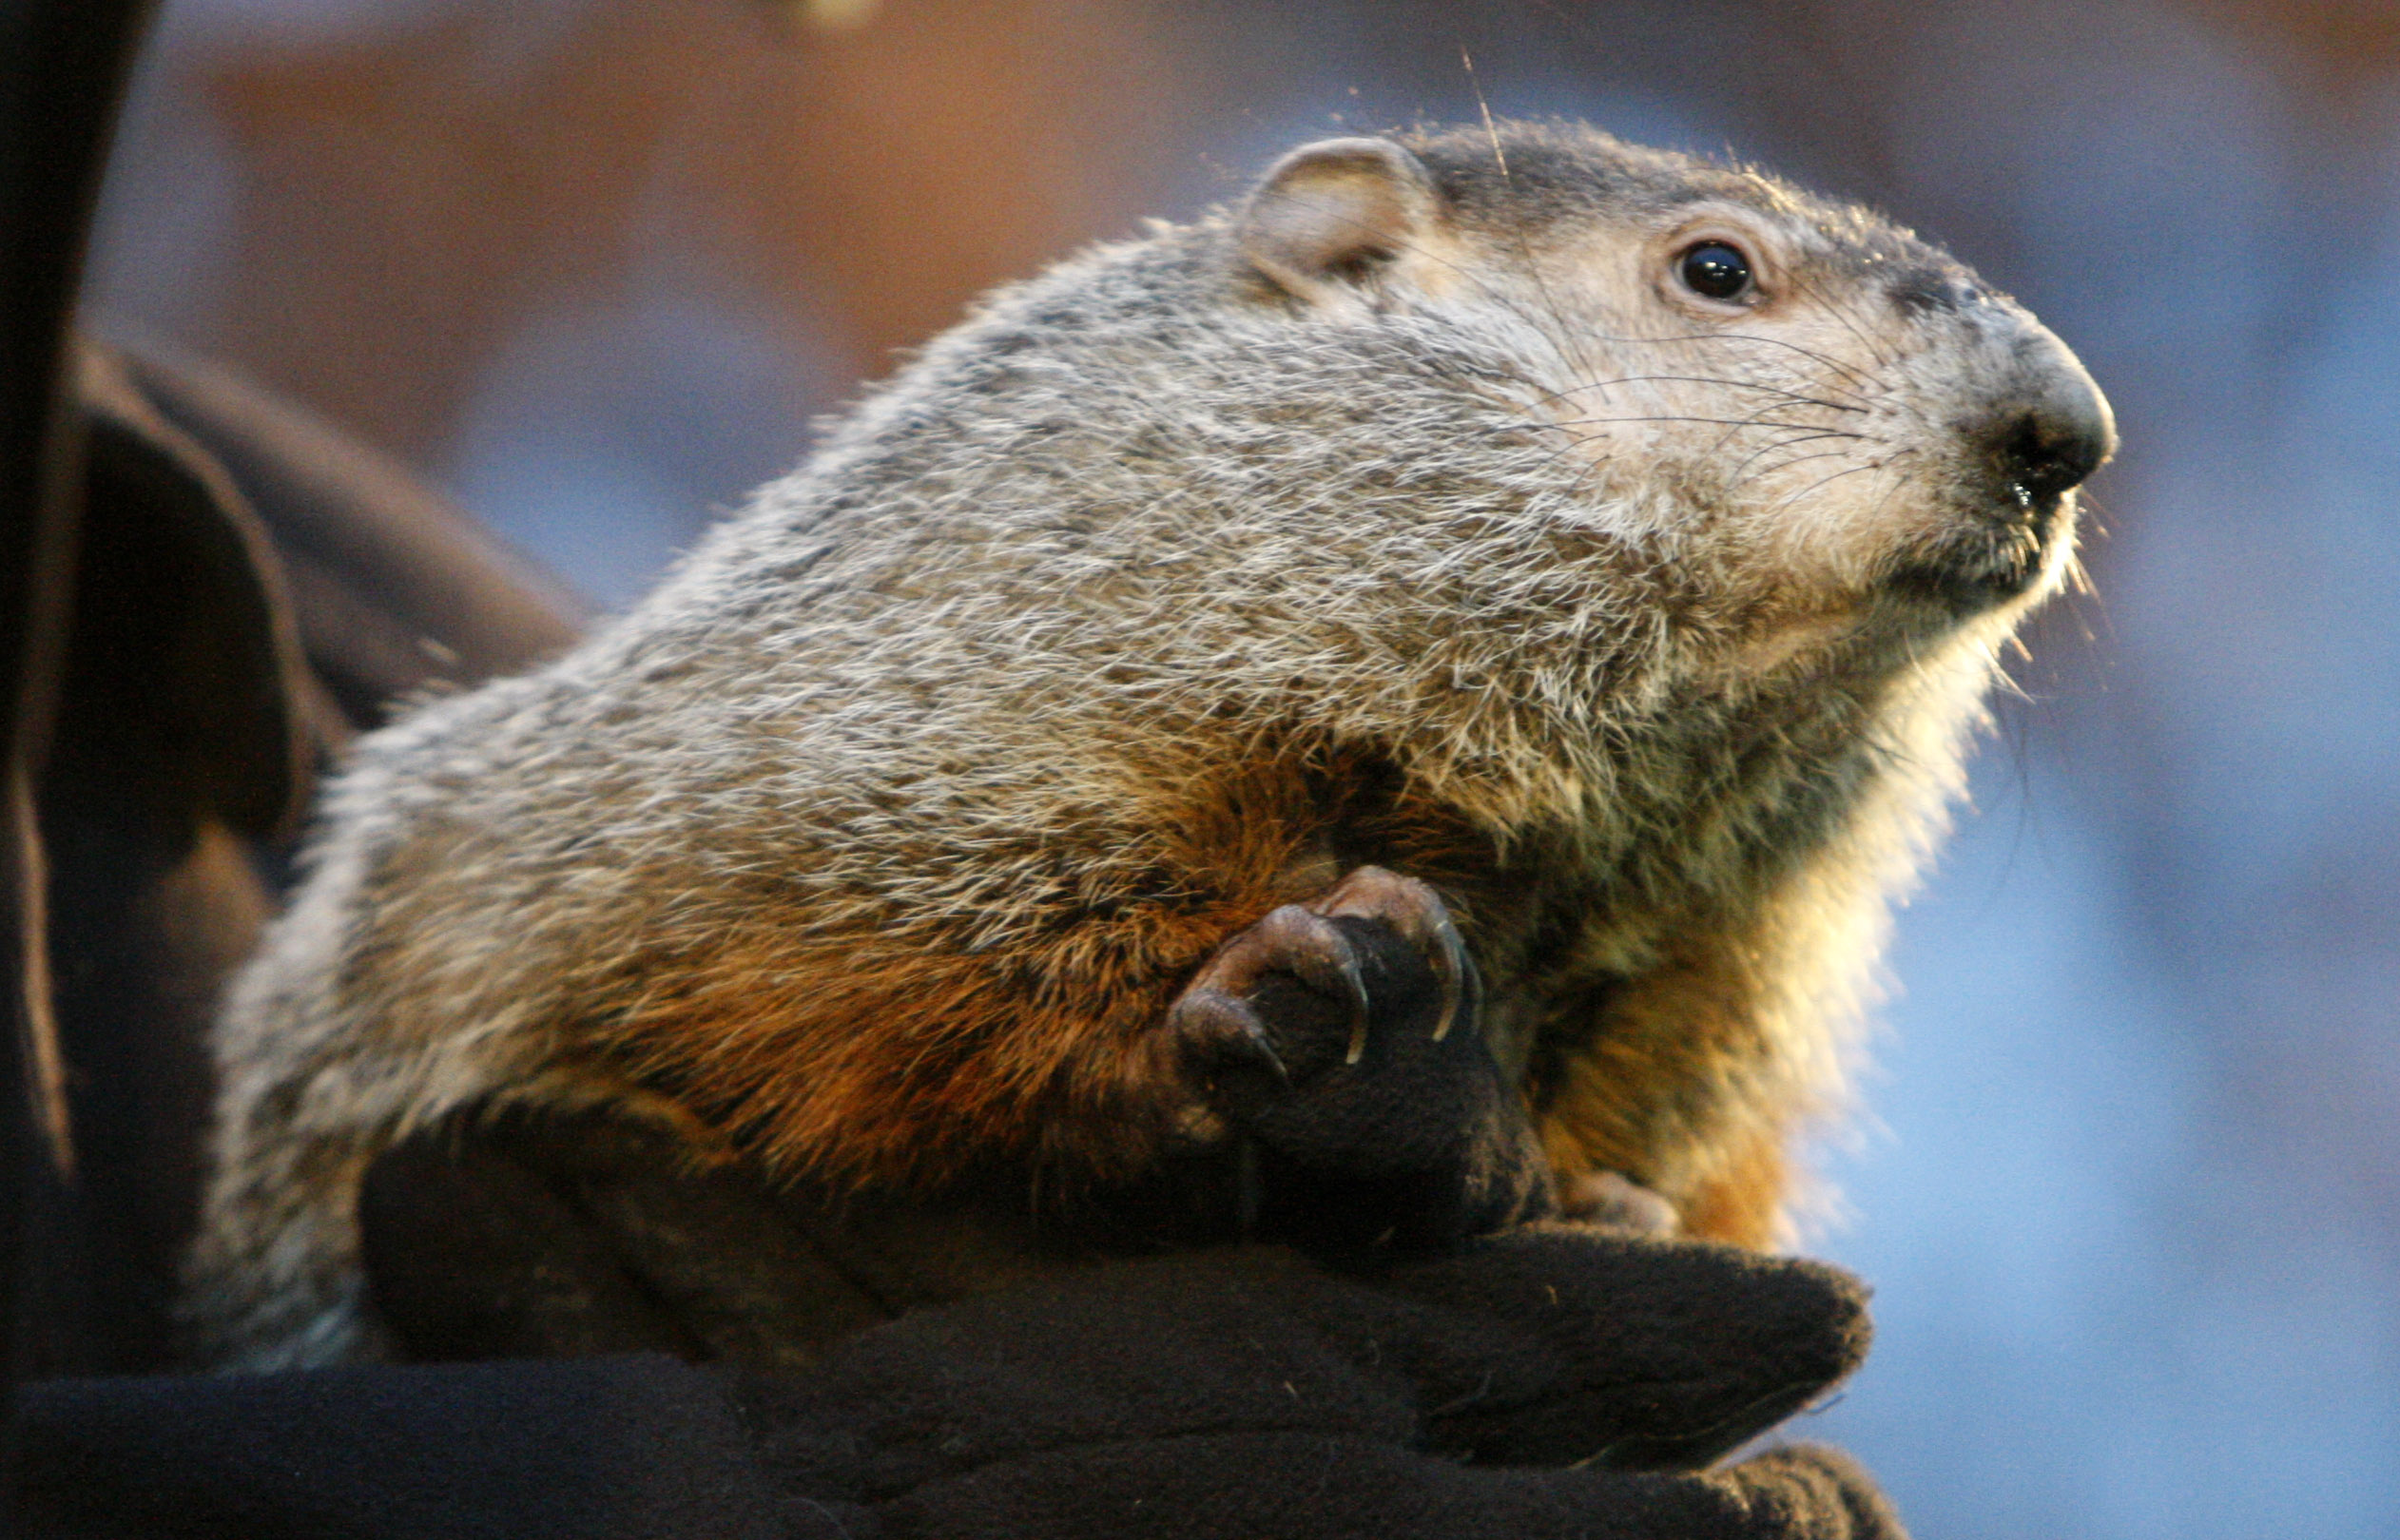 Demystifying a groundhog's prediction